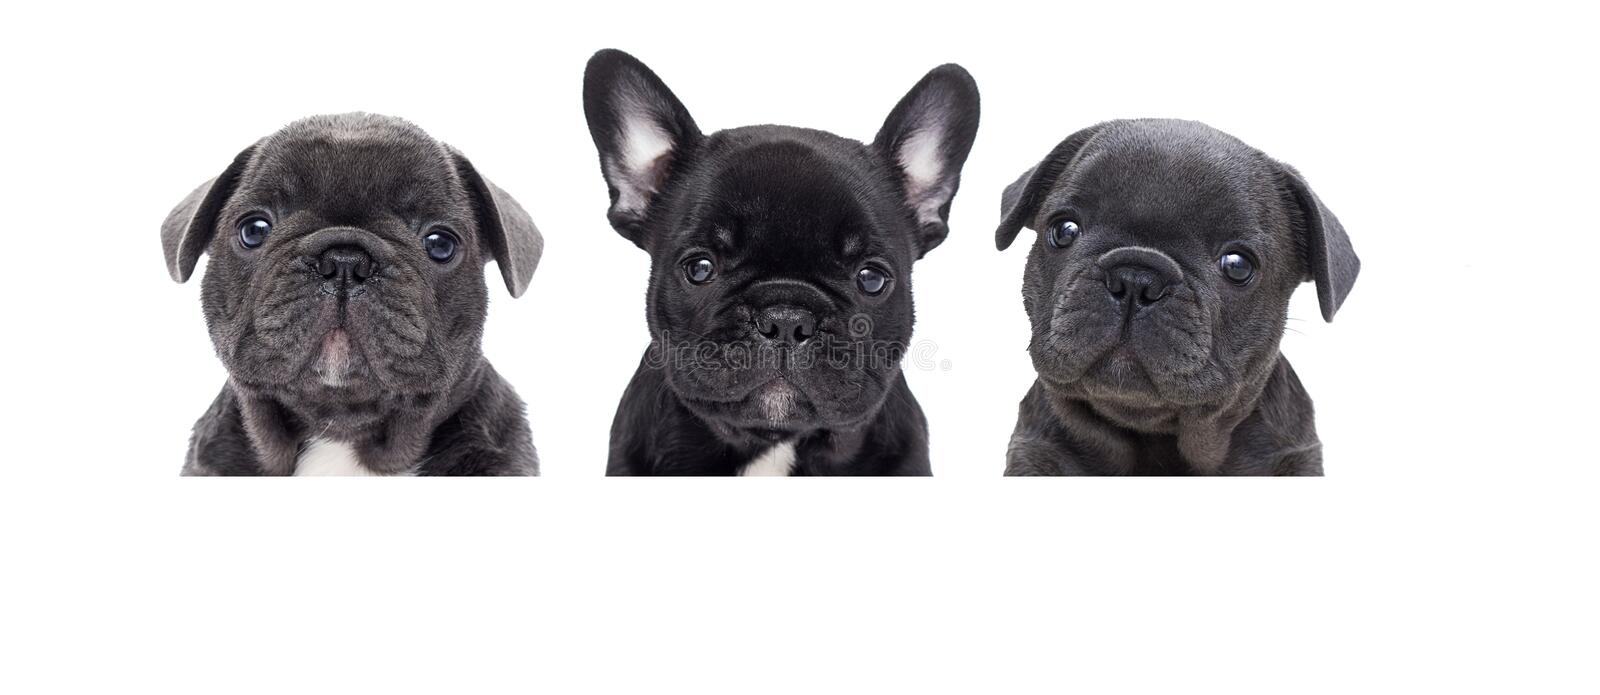 bulldog puppies looking up on a white background stock photography